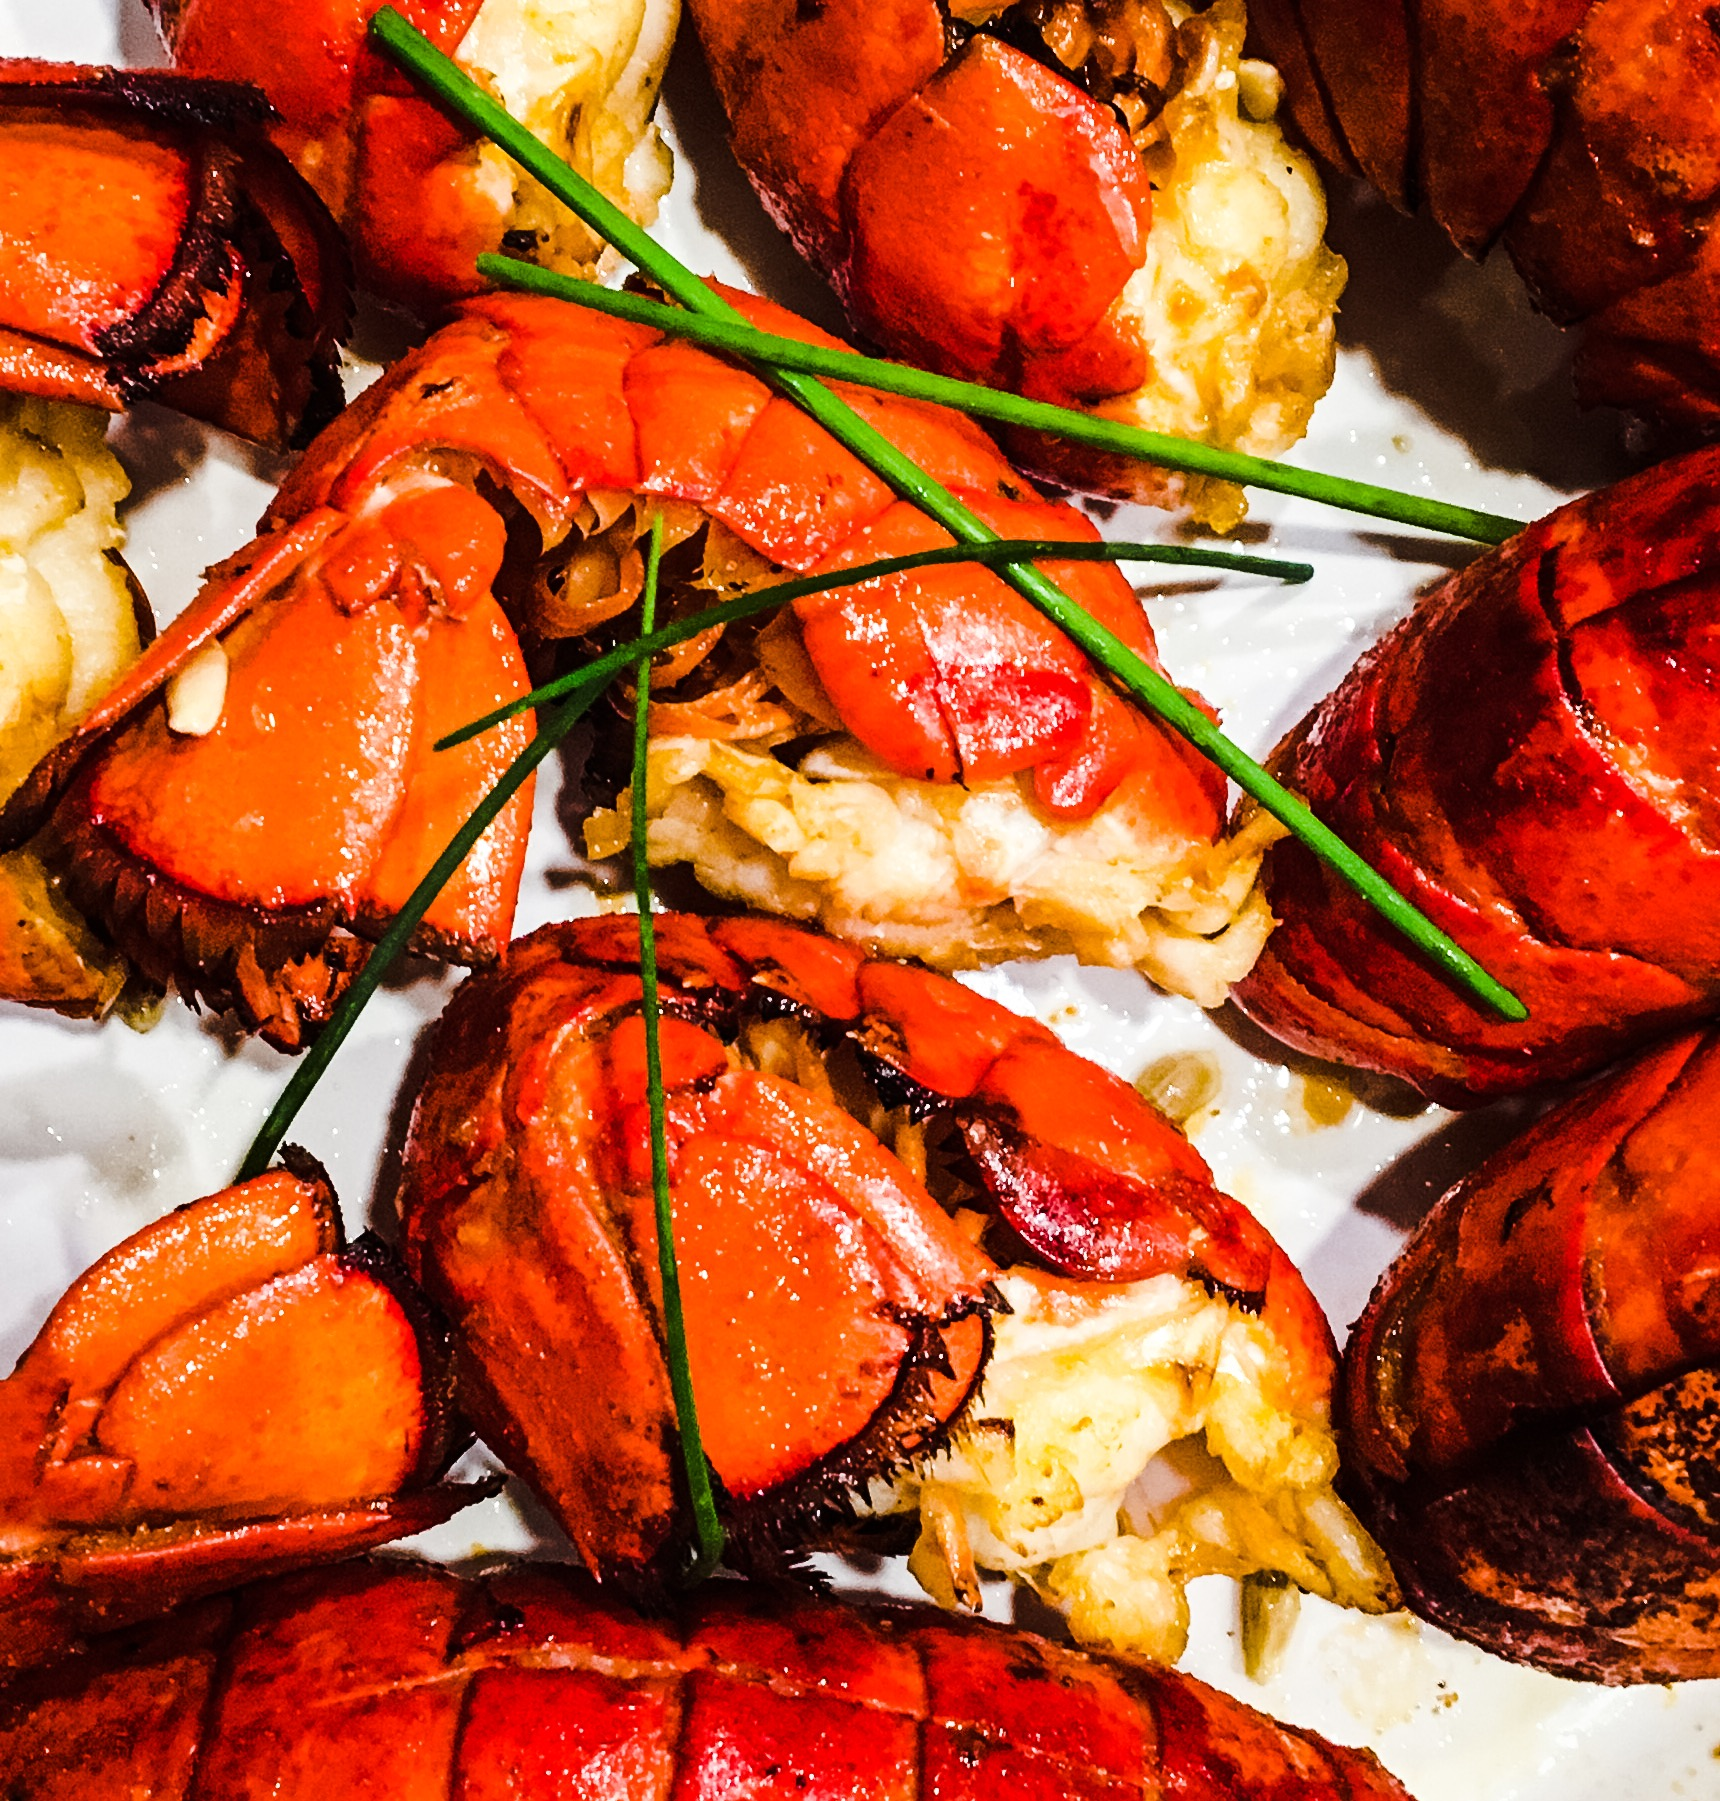 Oven Grilled Garlic Lobster Tails with Sriracha Butter